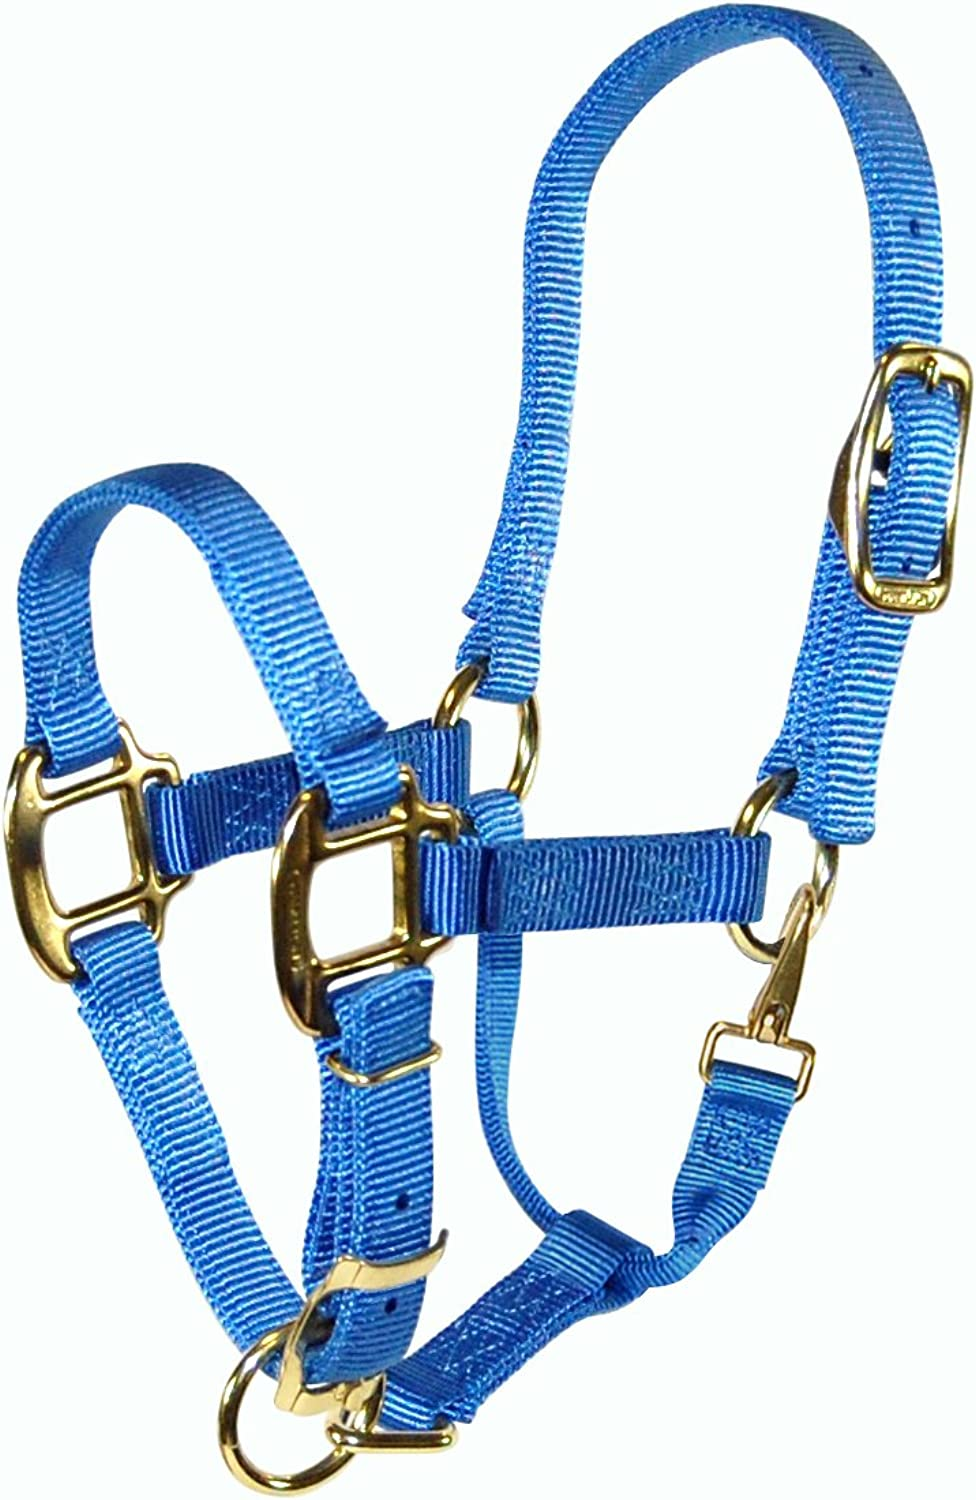 Hamilton 3 4 Adjustable Quality Weanling Halter with Snap, Berry blueee